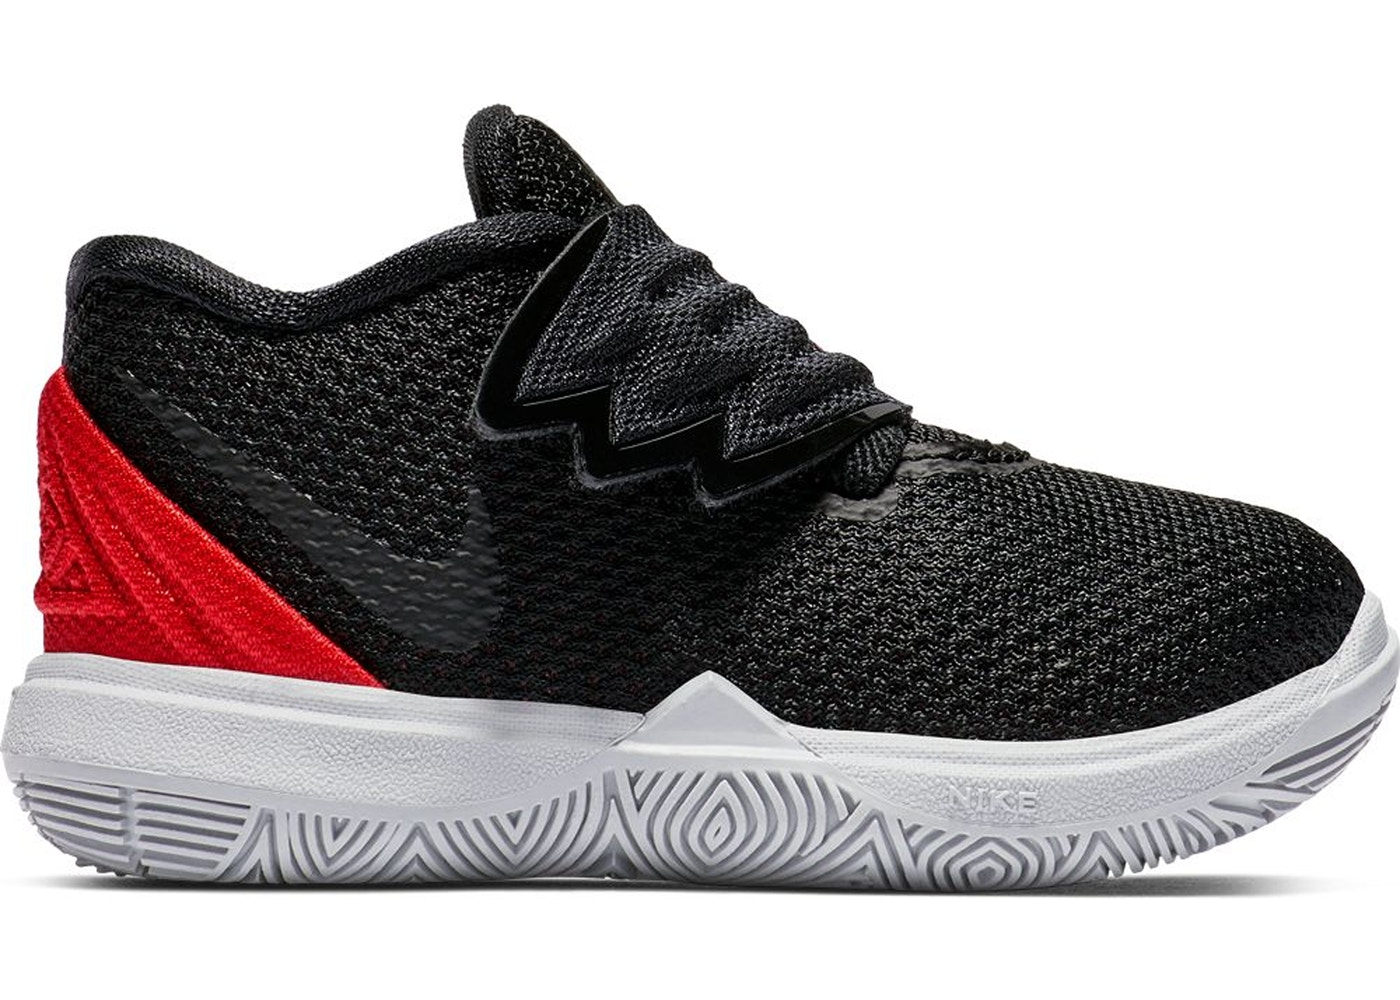 60c94020db00 Nike Basketball Kyrie Shoes - Release Date